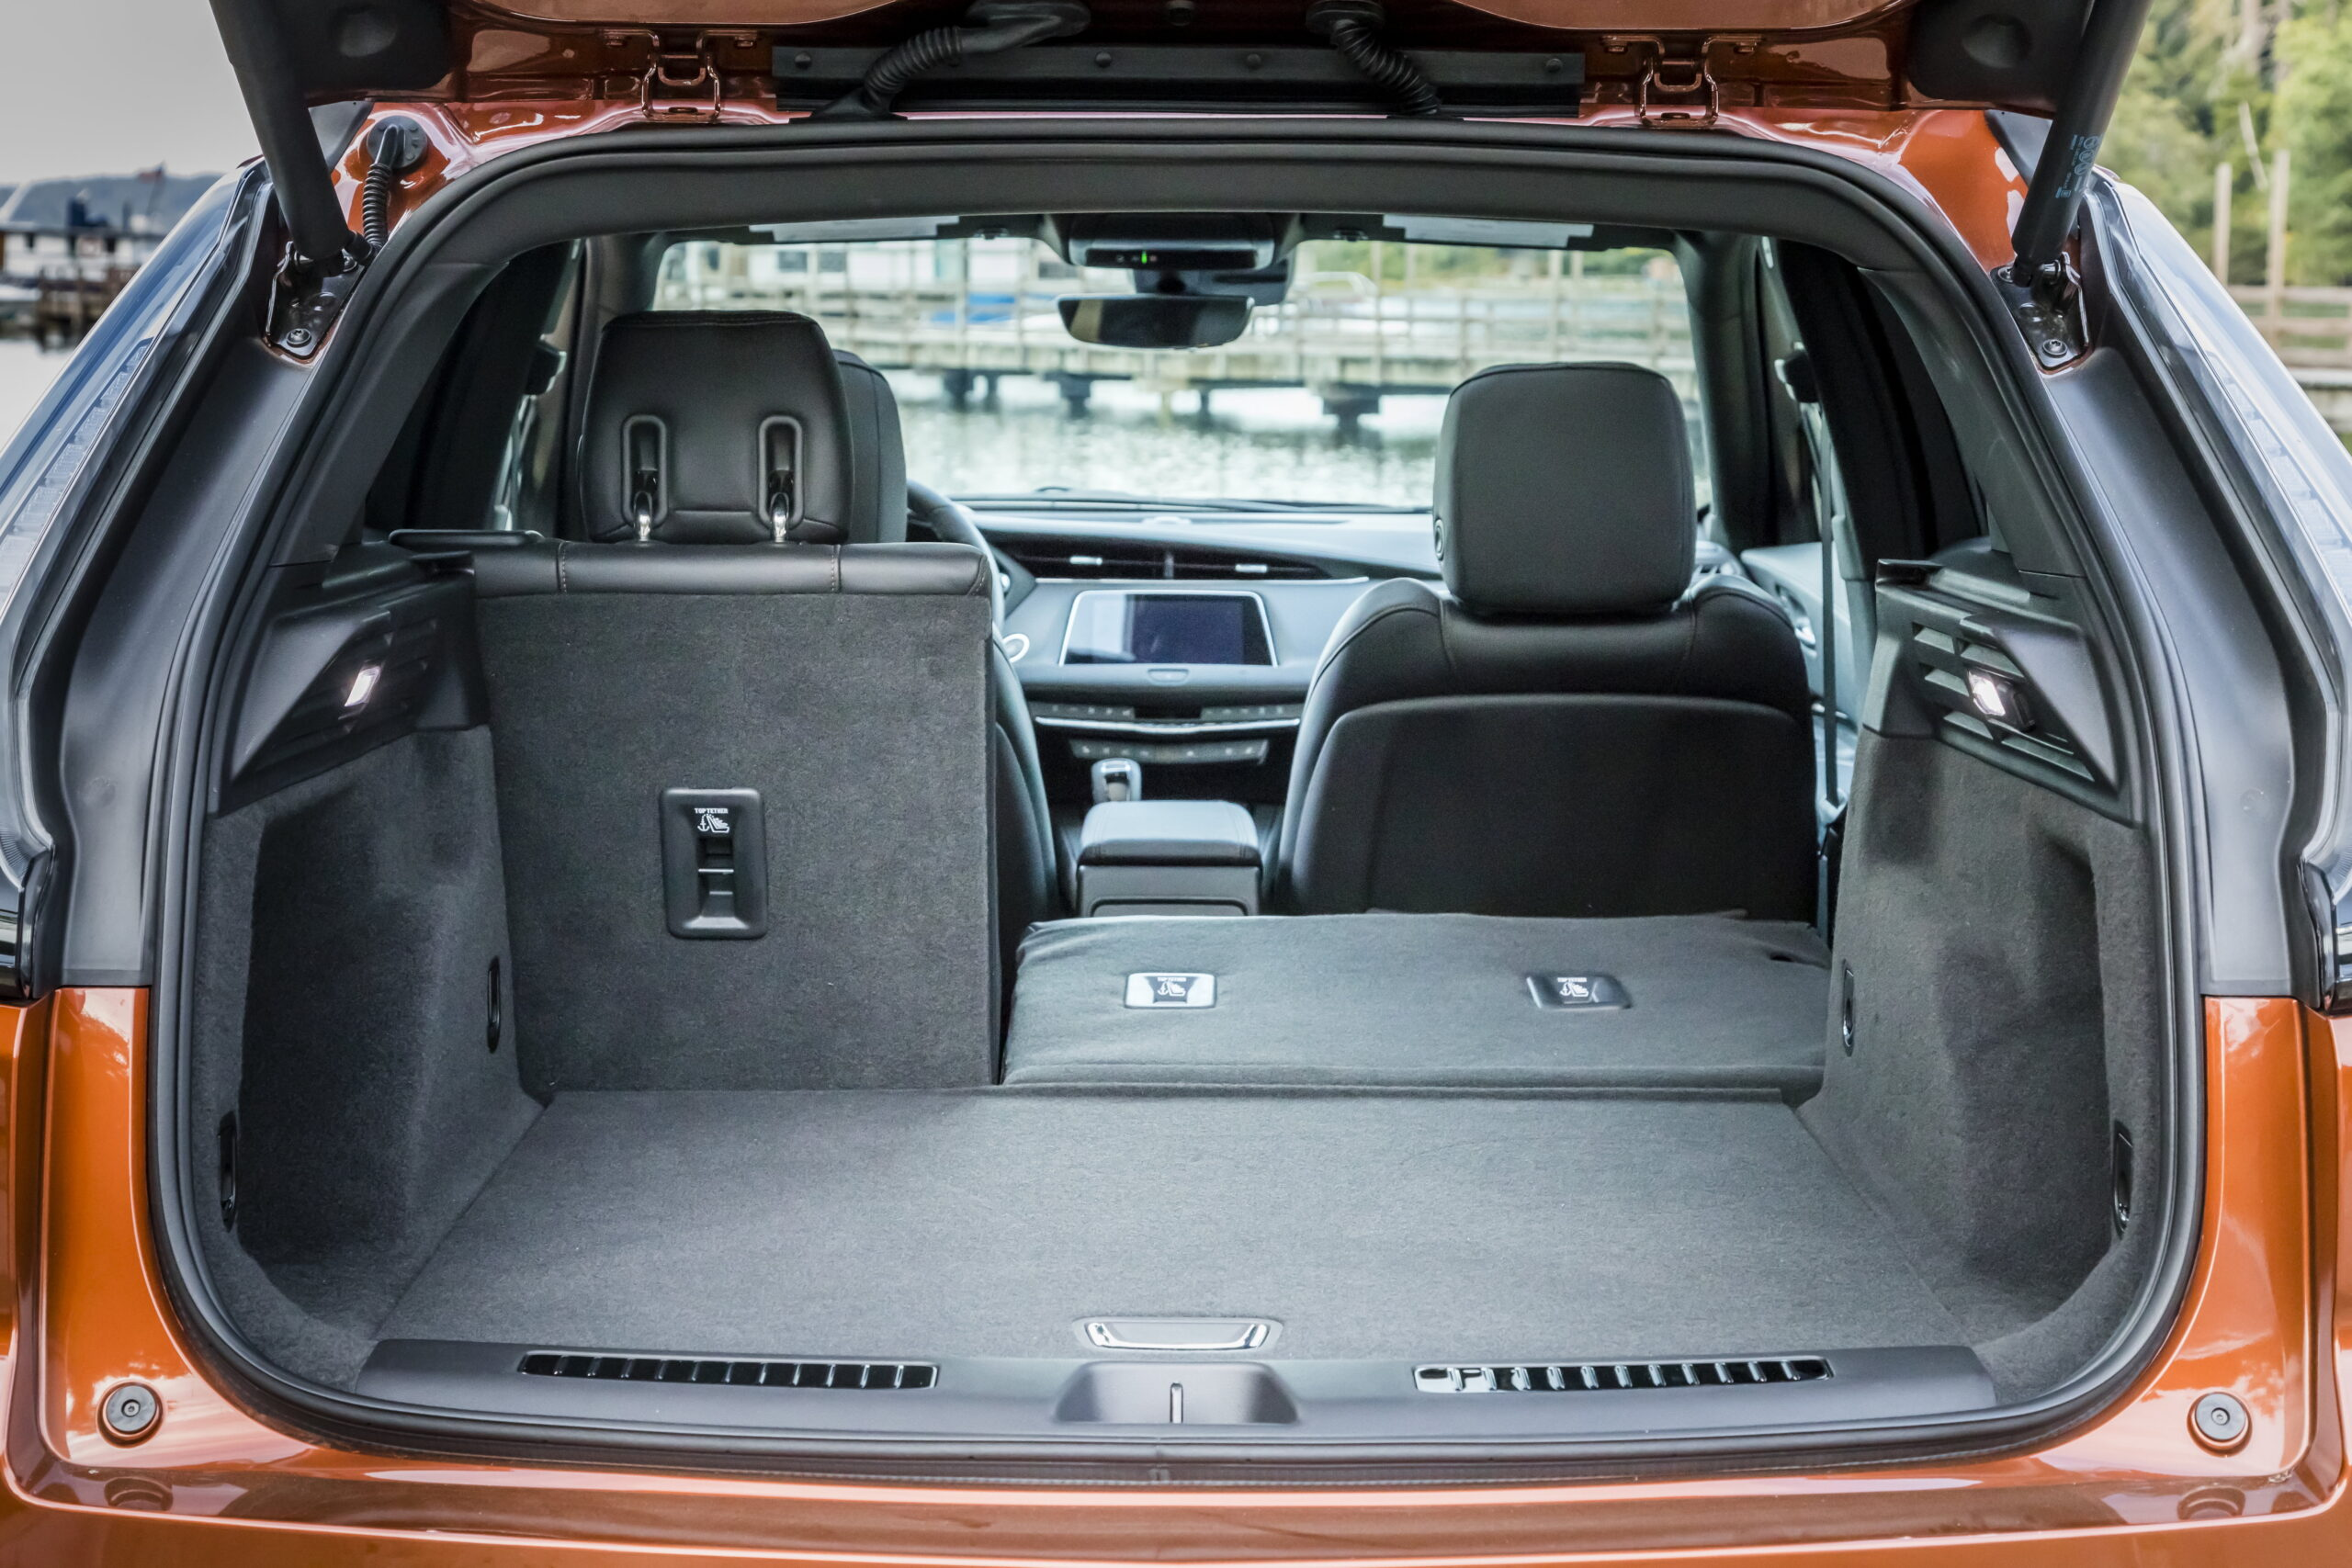 For a compact luxury SUV, the XT4 offers a maximum load capacity of 1,385 liters with the rear seats folded down.